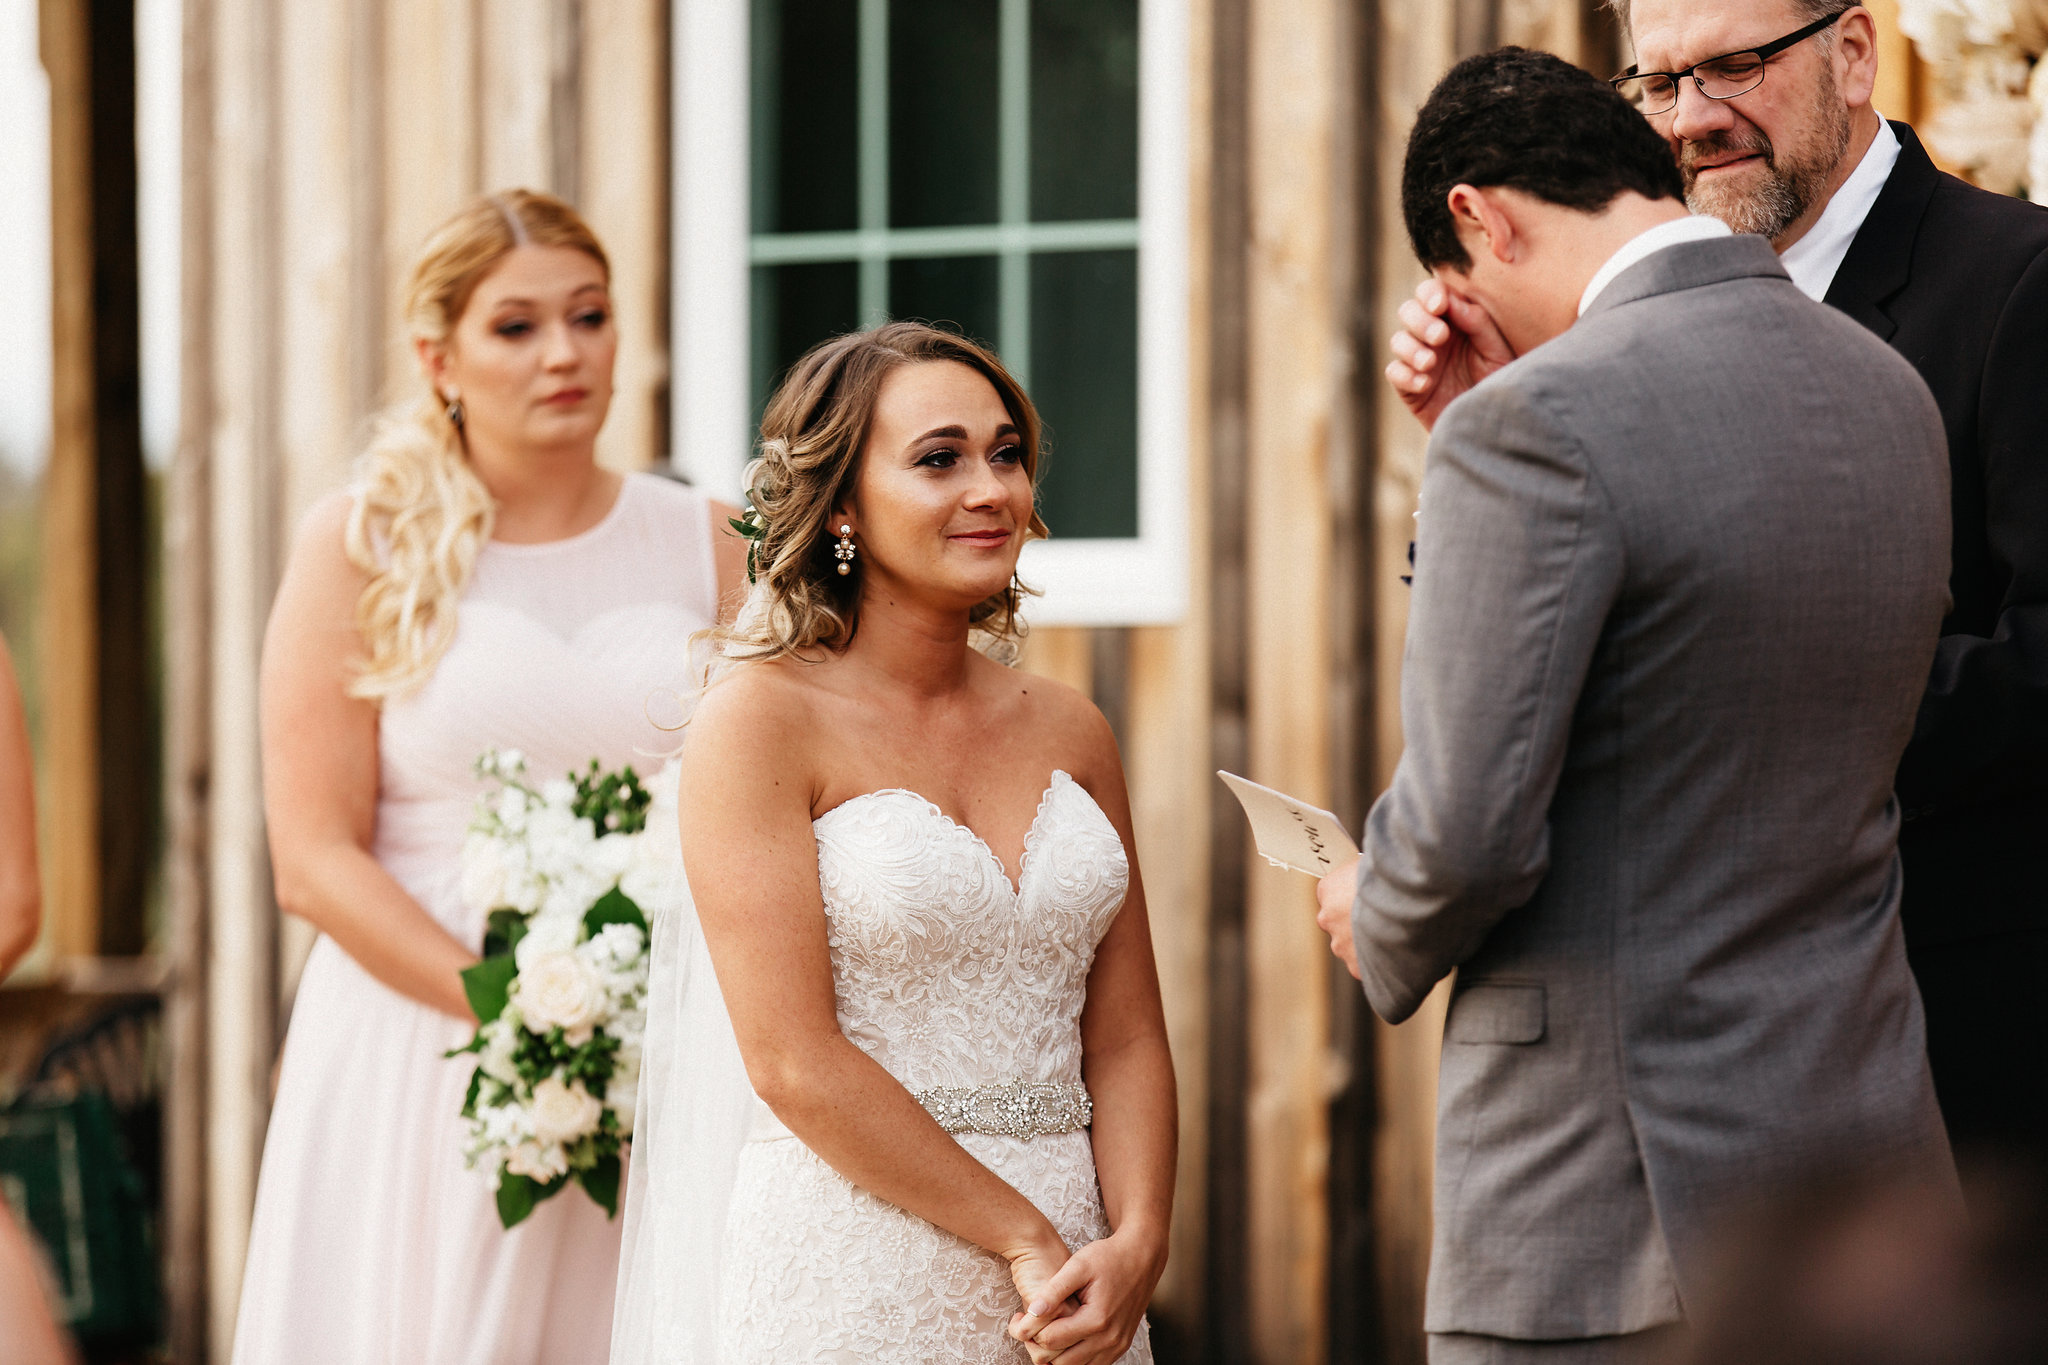 Ashley&NathanMarried2017-11-10at19.26.48PM109.jpg